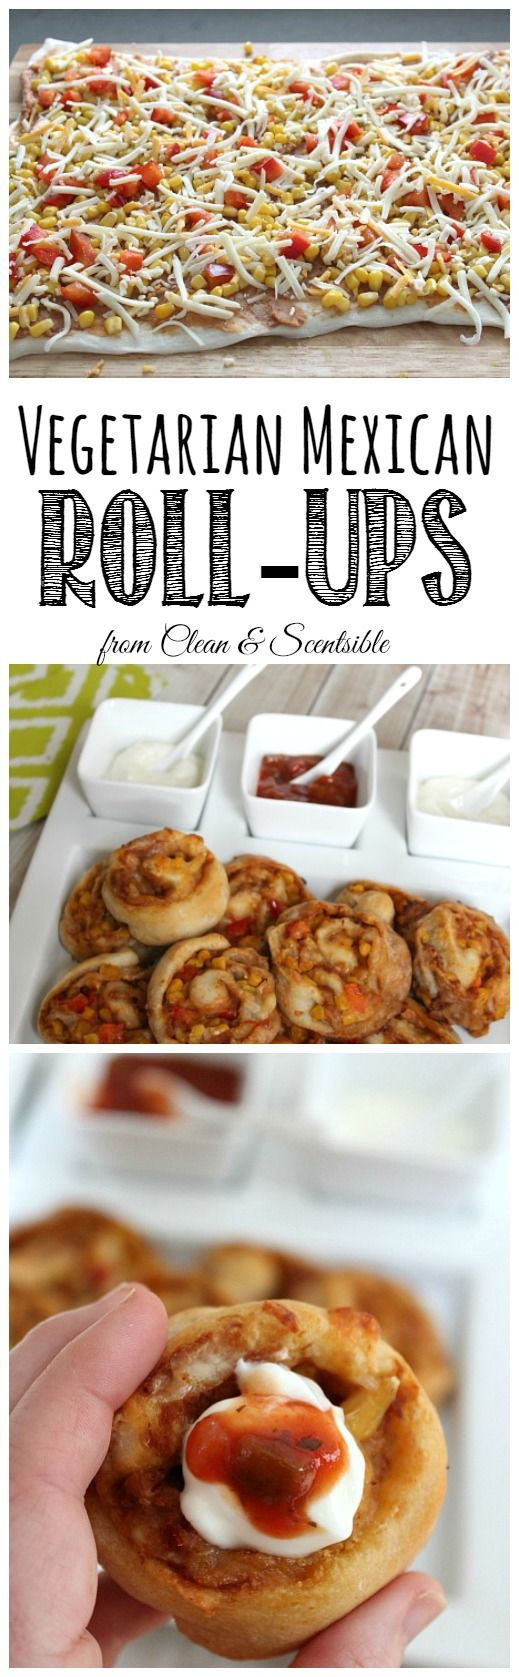 These vegetarian Mexican roll ups are done from start to finish in about 30 minutes. Perfect for a quick and easy dinner idea or party appetizer! // cleanandscentsible.com